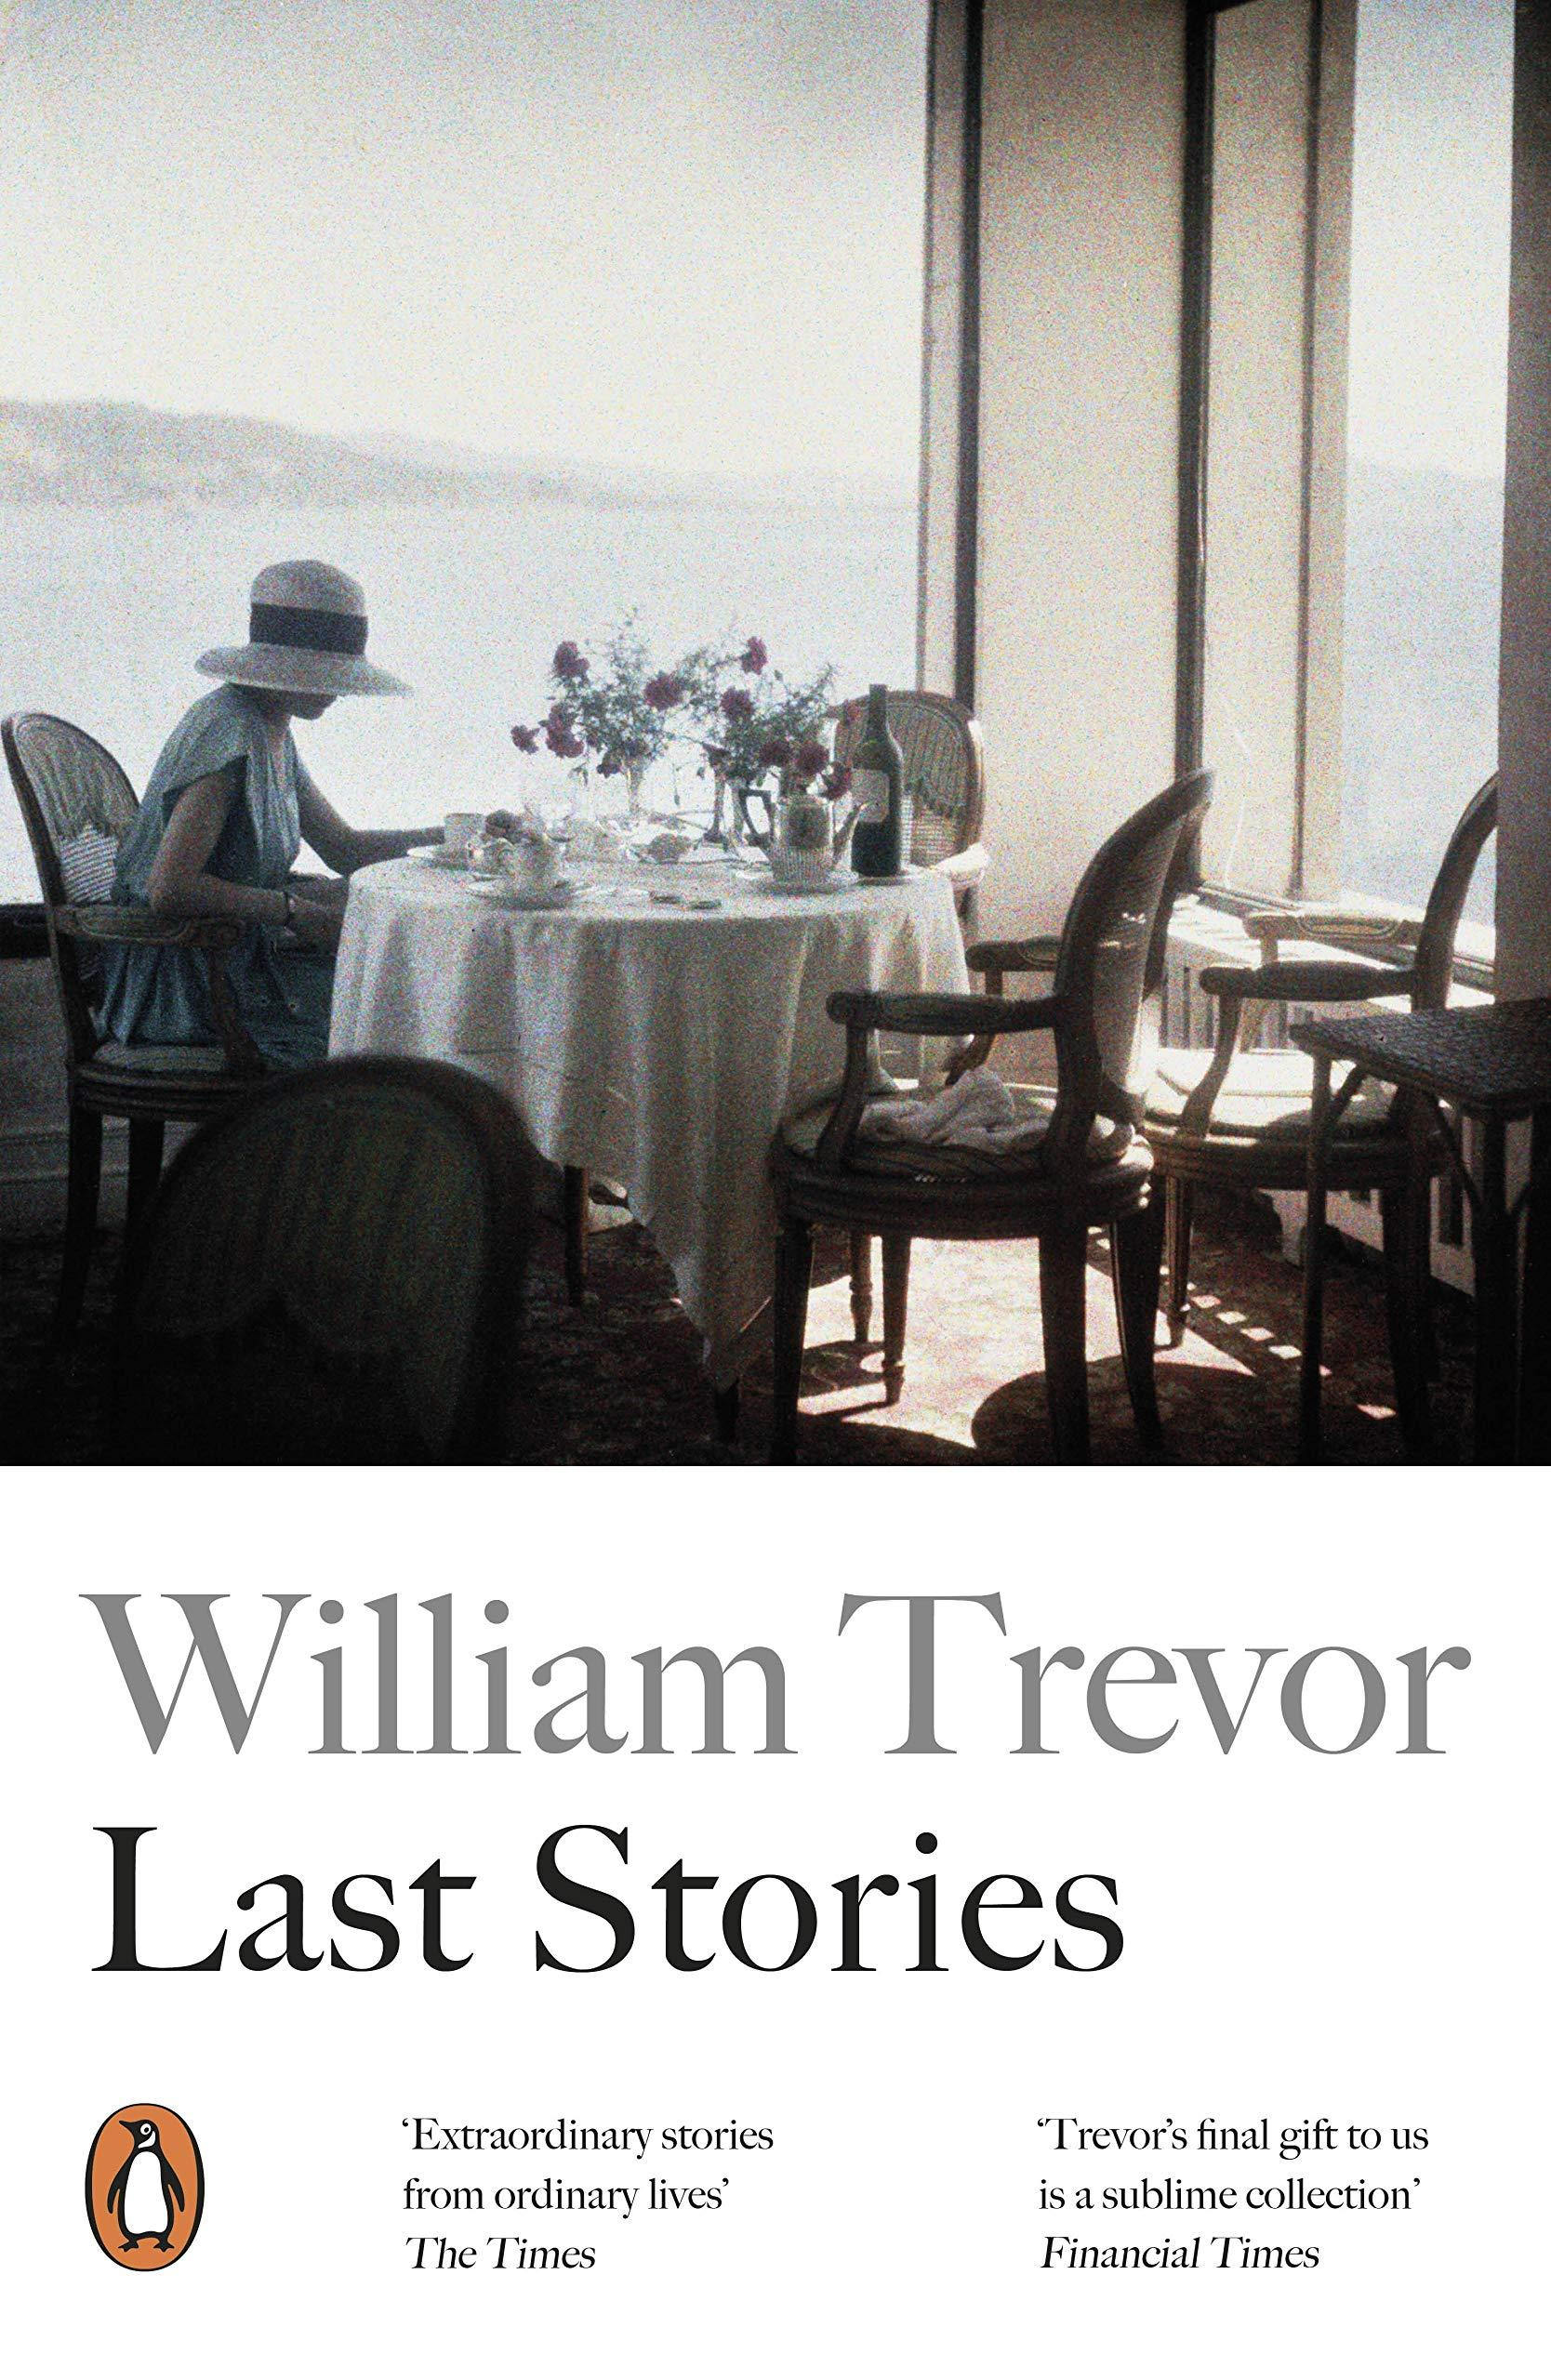 Last Stories by Willia Trevor